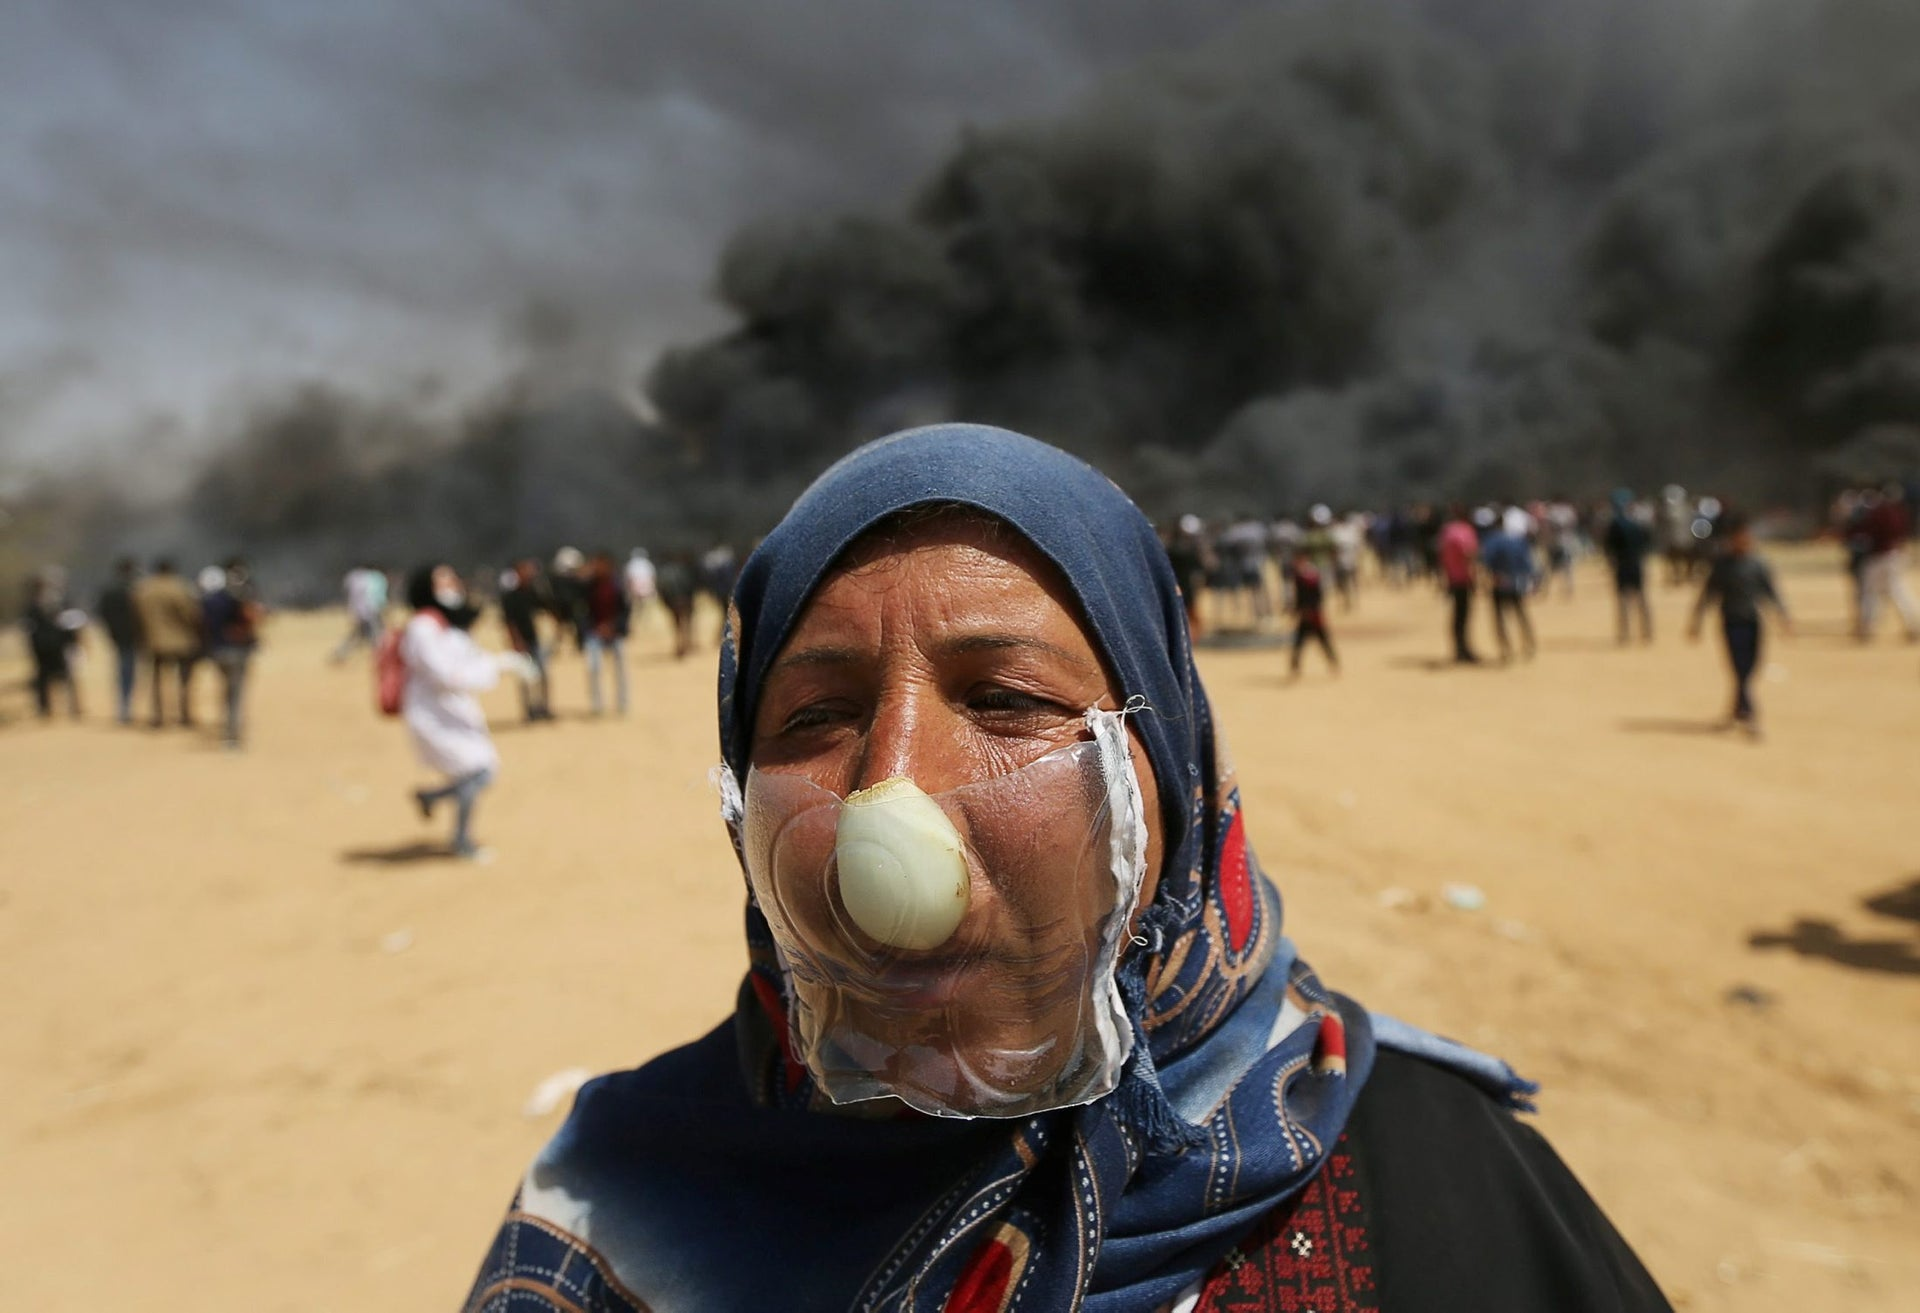 Palestinian woman Jehad Abu Mehsen covers her nose with a piece of plastic and an onion to protect herself from inhaling tear gas fired by Israeli troops during a protest at the Israel-Gaza border in the southern Gaza Strip April 6, 2018. Picture taken April 6, 2018.